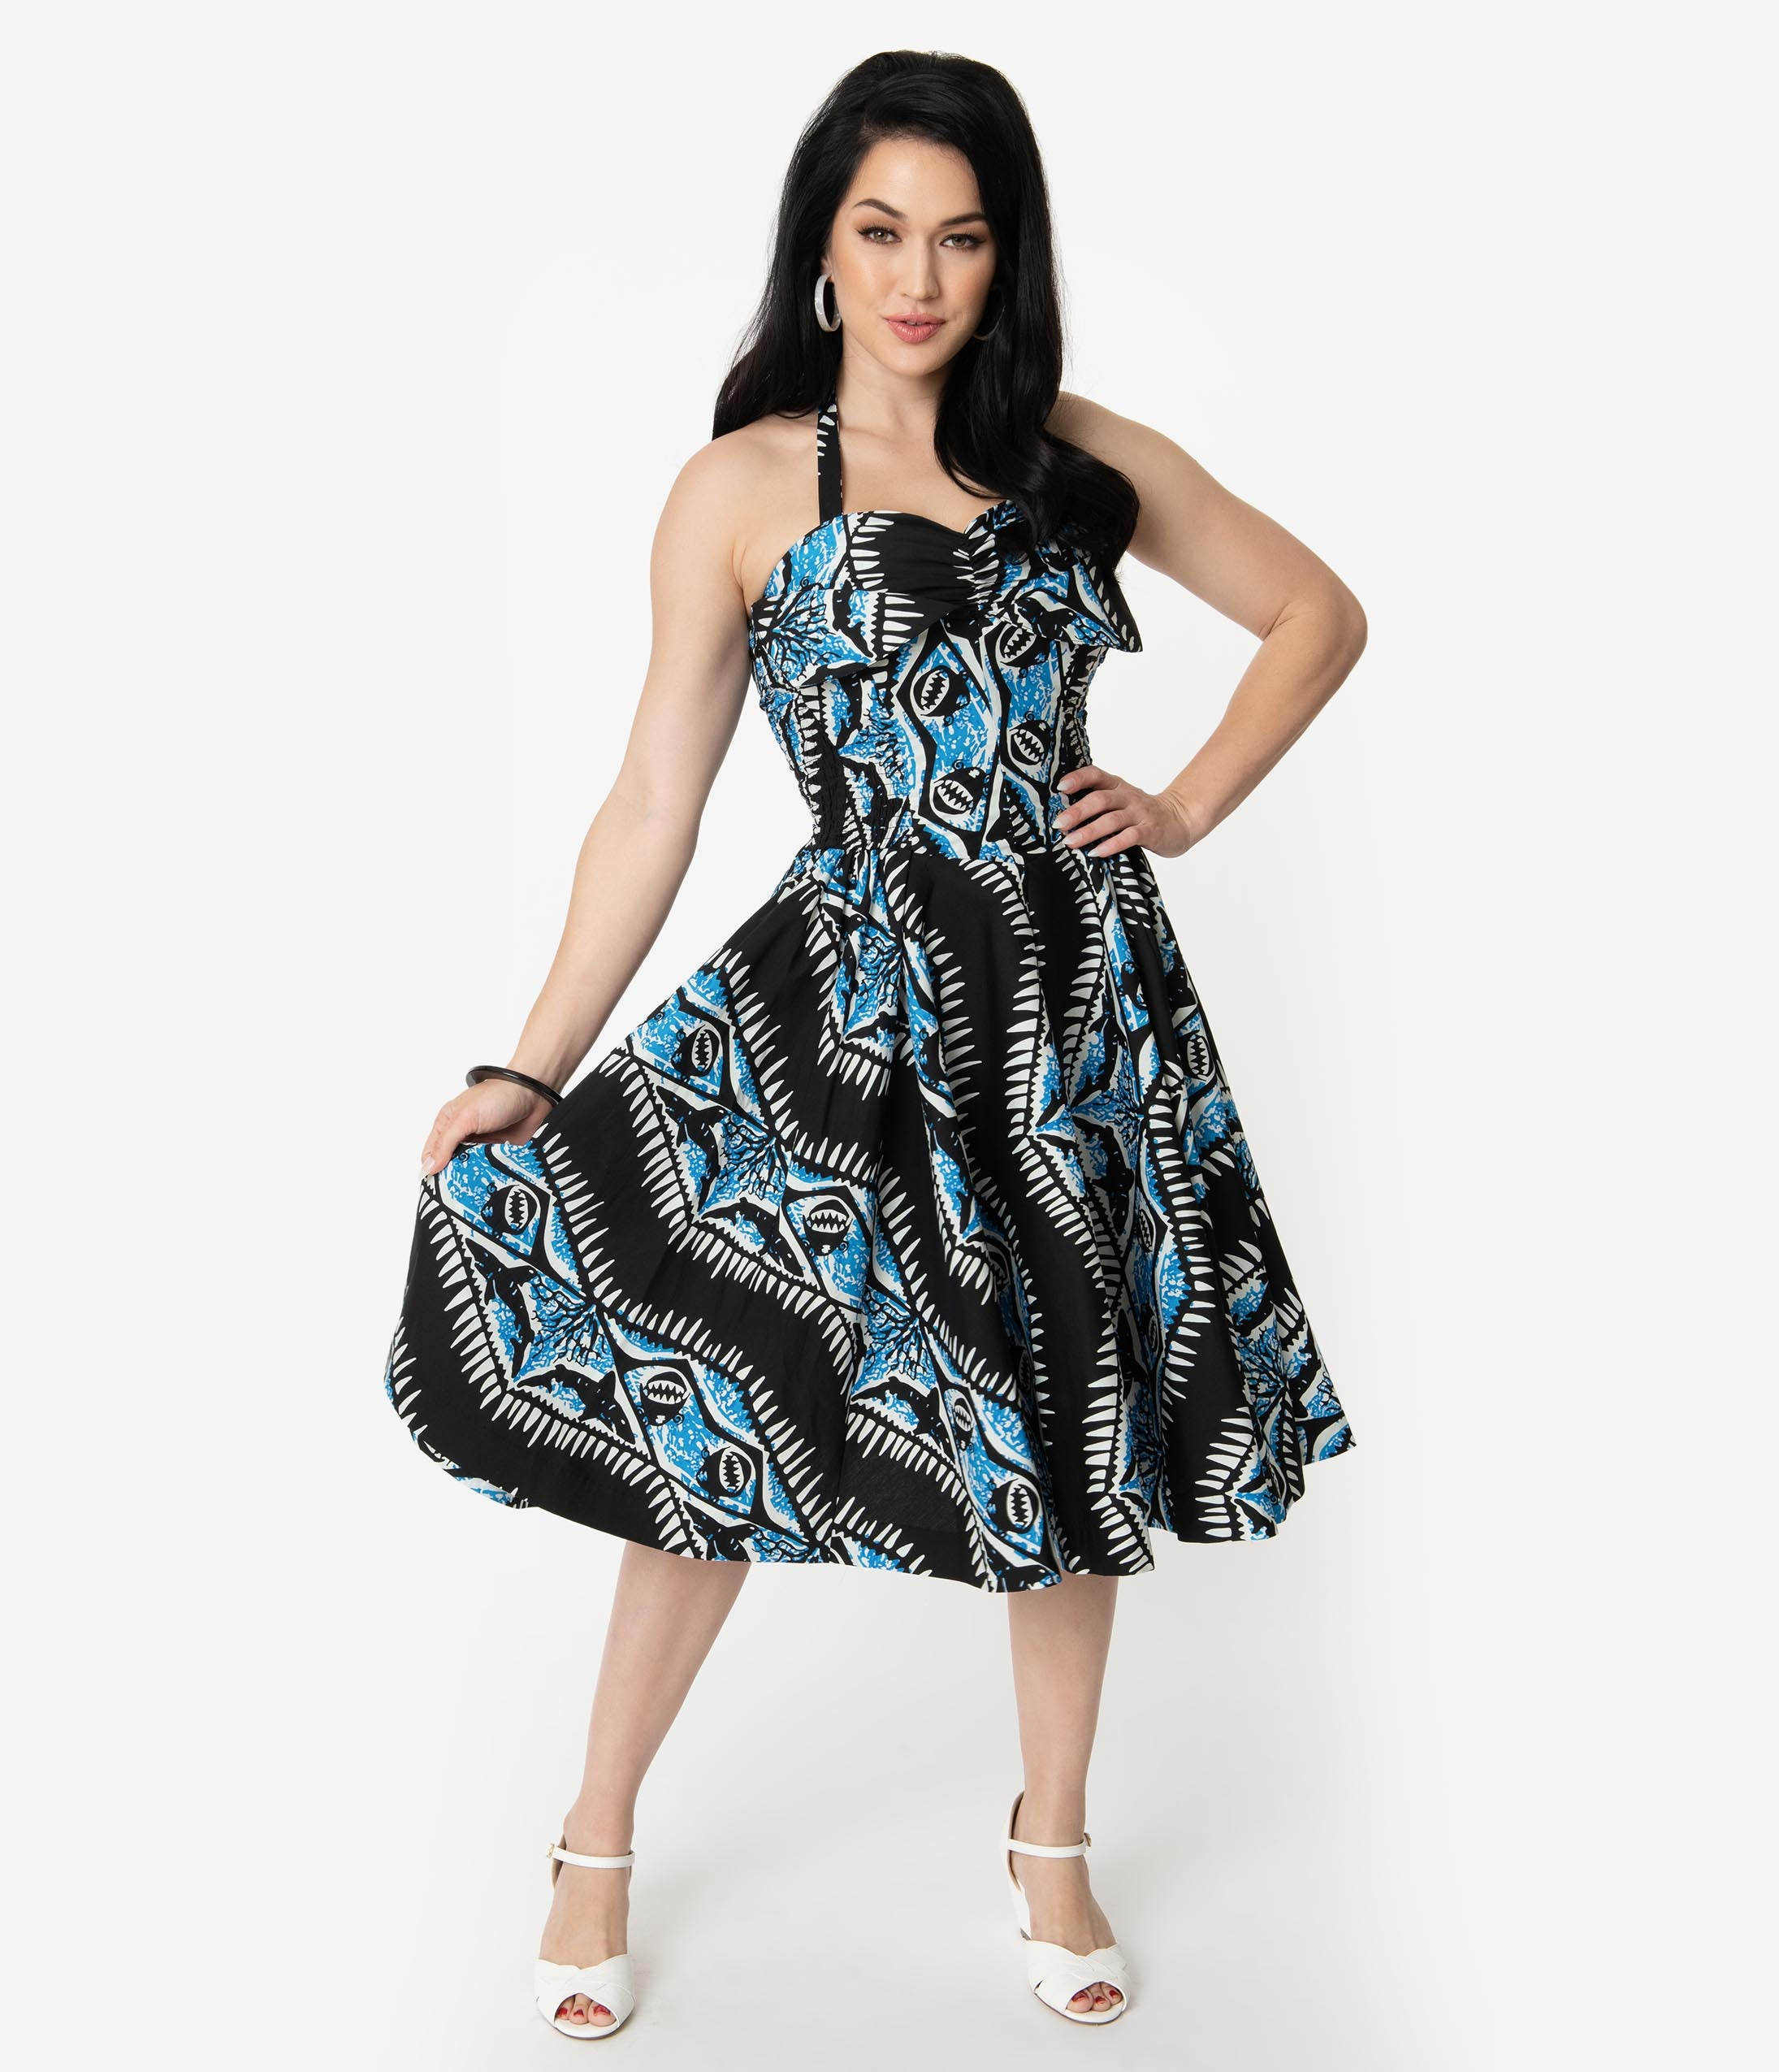 a8fe2e596 Retro Tiki Dress – Tropical, Hawaiian Dresses Alfred Shaheen Black Blue  Shark Print Hawaiian Swing